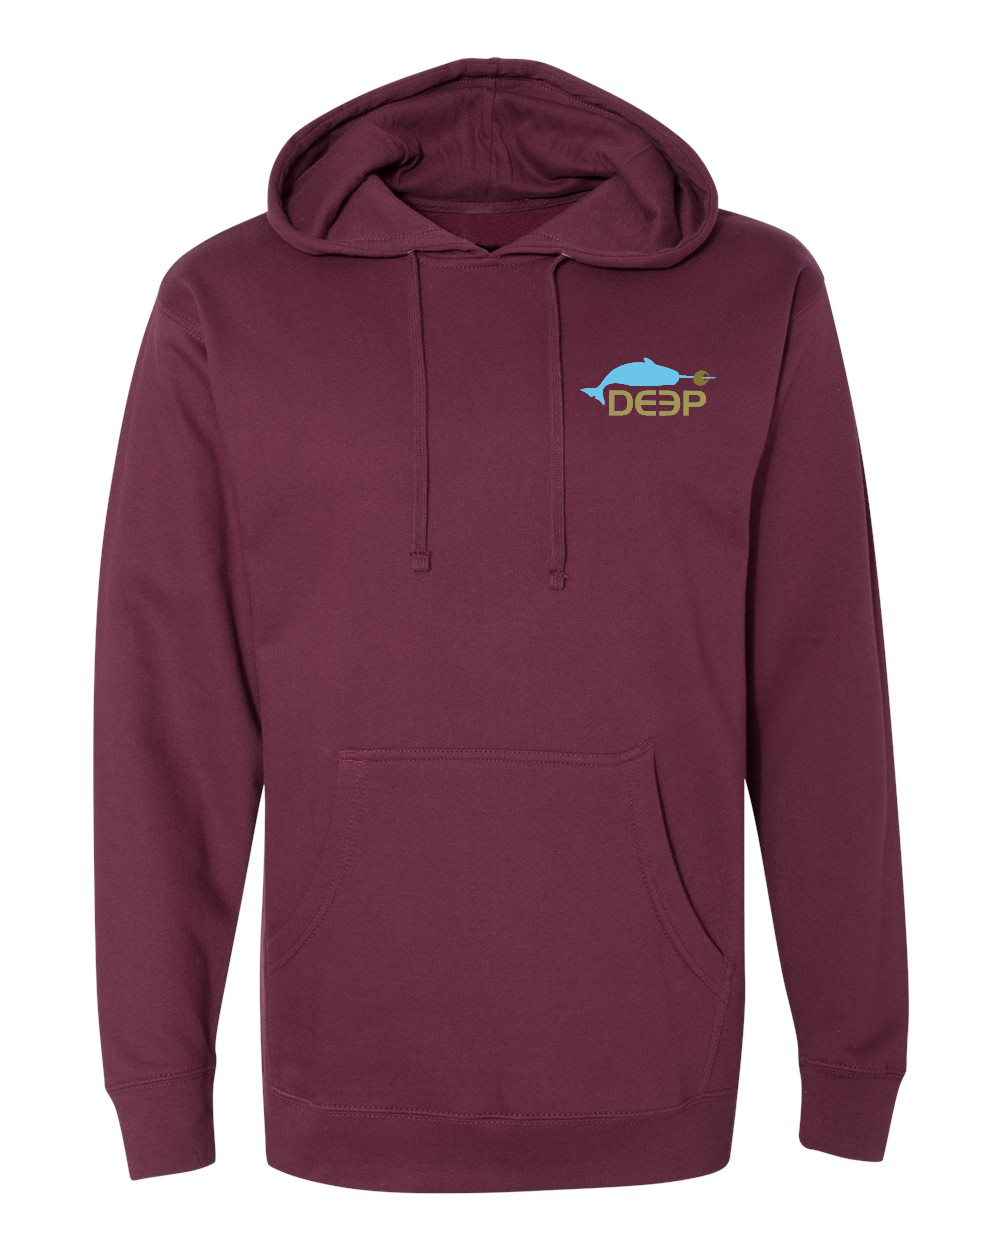 Limited Time Dive Bar Hoodie - Maroon